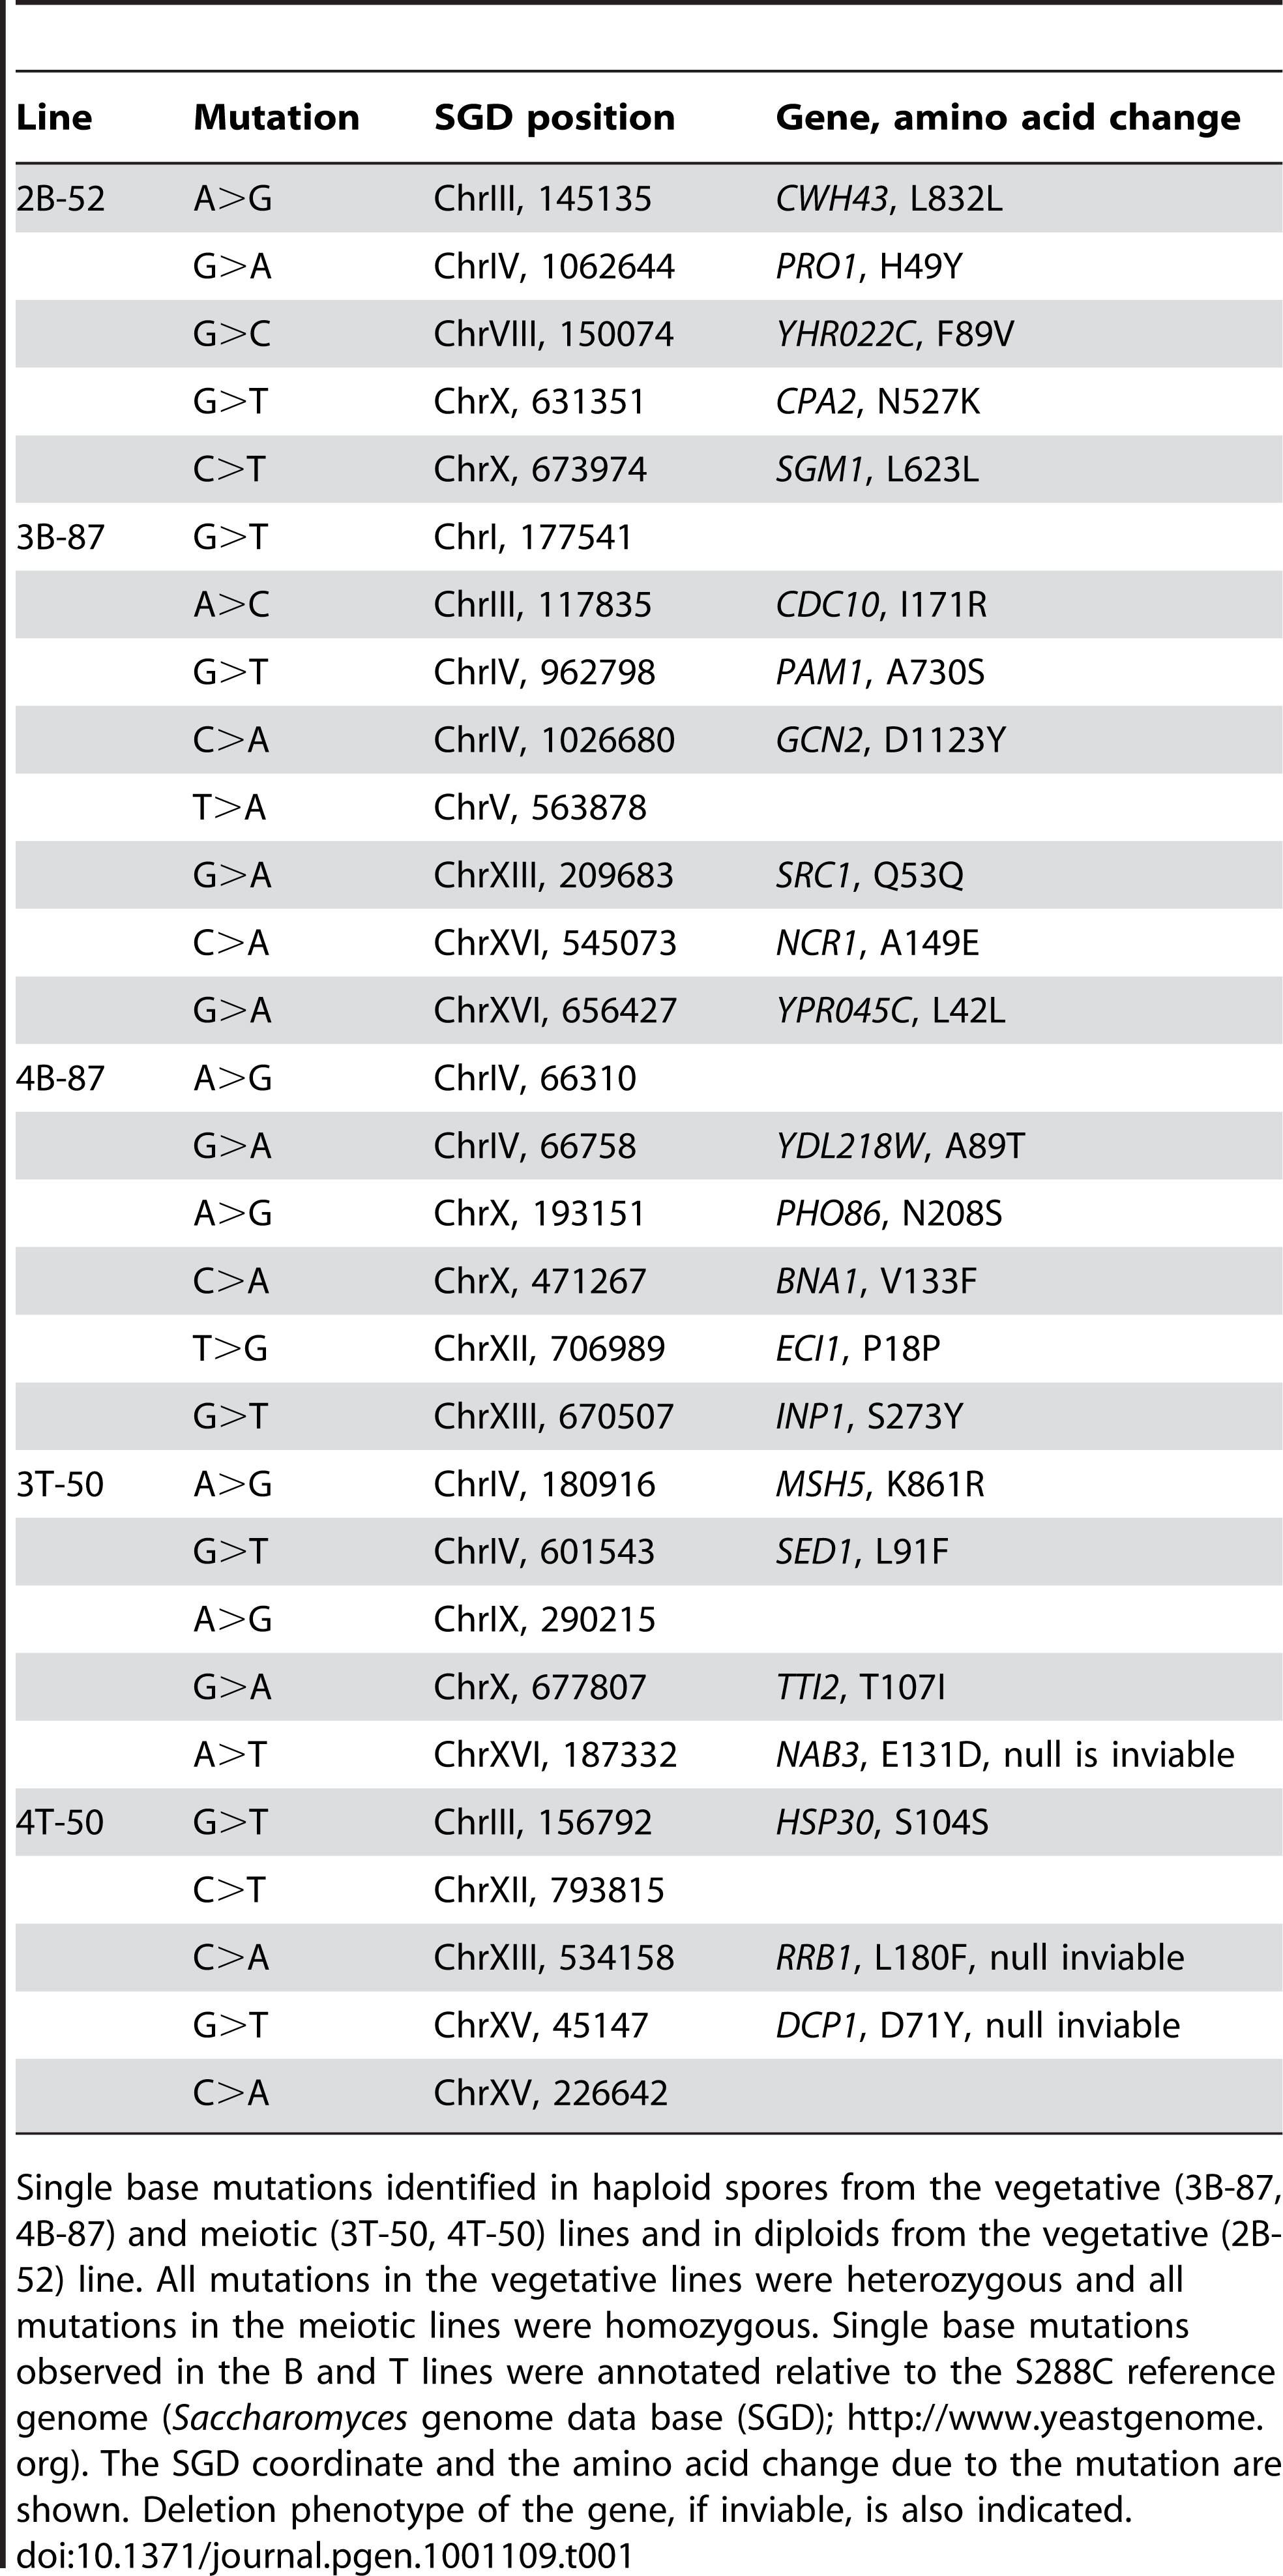 Genome location of derived mutations in the B87 and T50 lines.